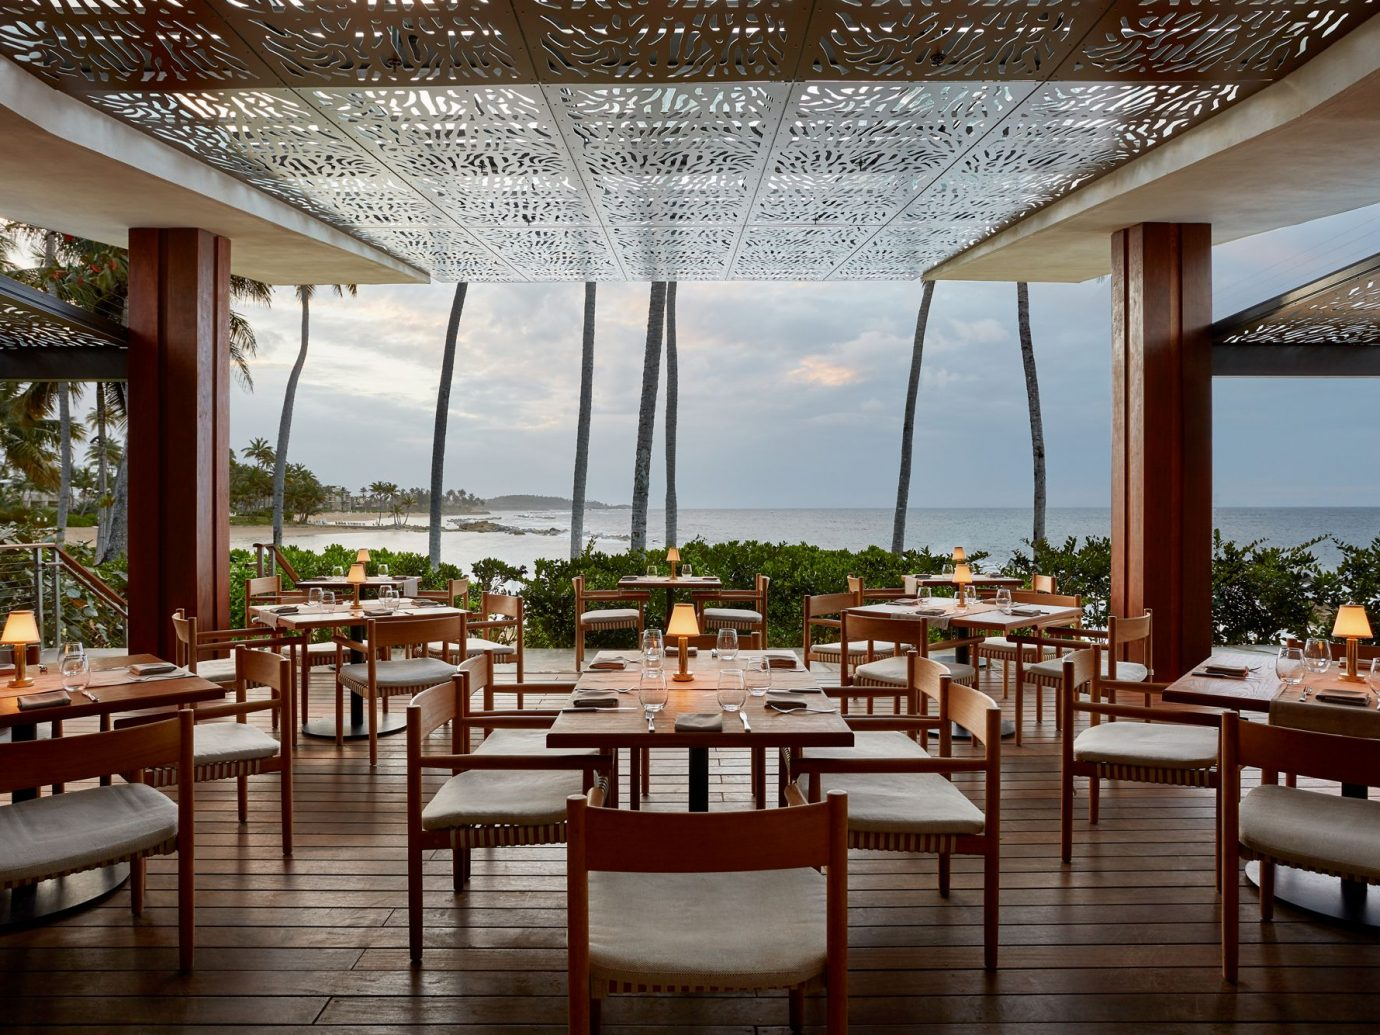 Restaurant at Dorado Beach